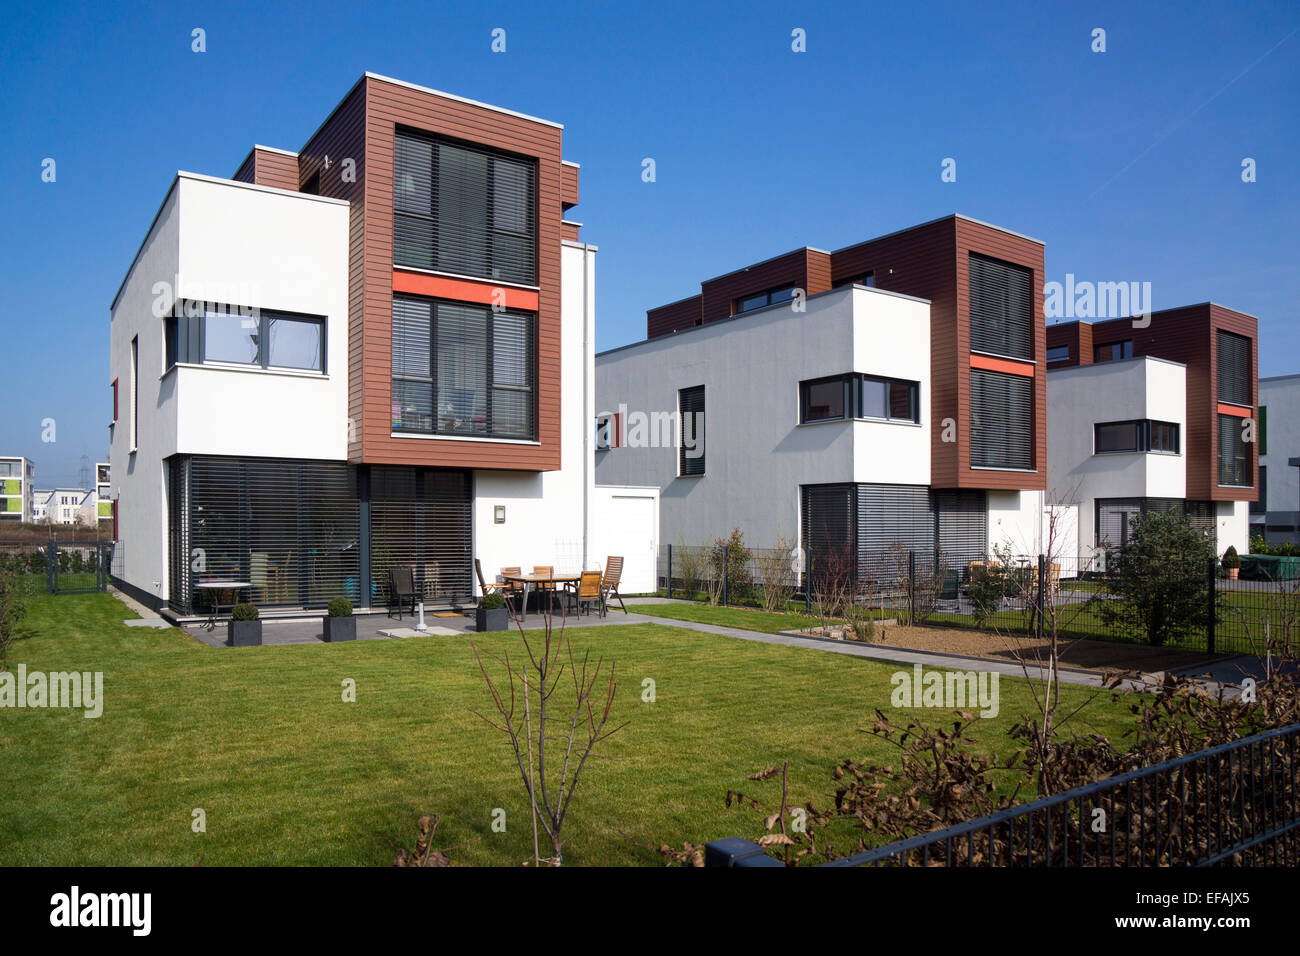 single family house modern architecture in the bauhaus style stock photo 78295677 alamy. Black Bedroom Furniture Sets. Home Design Ideas